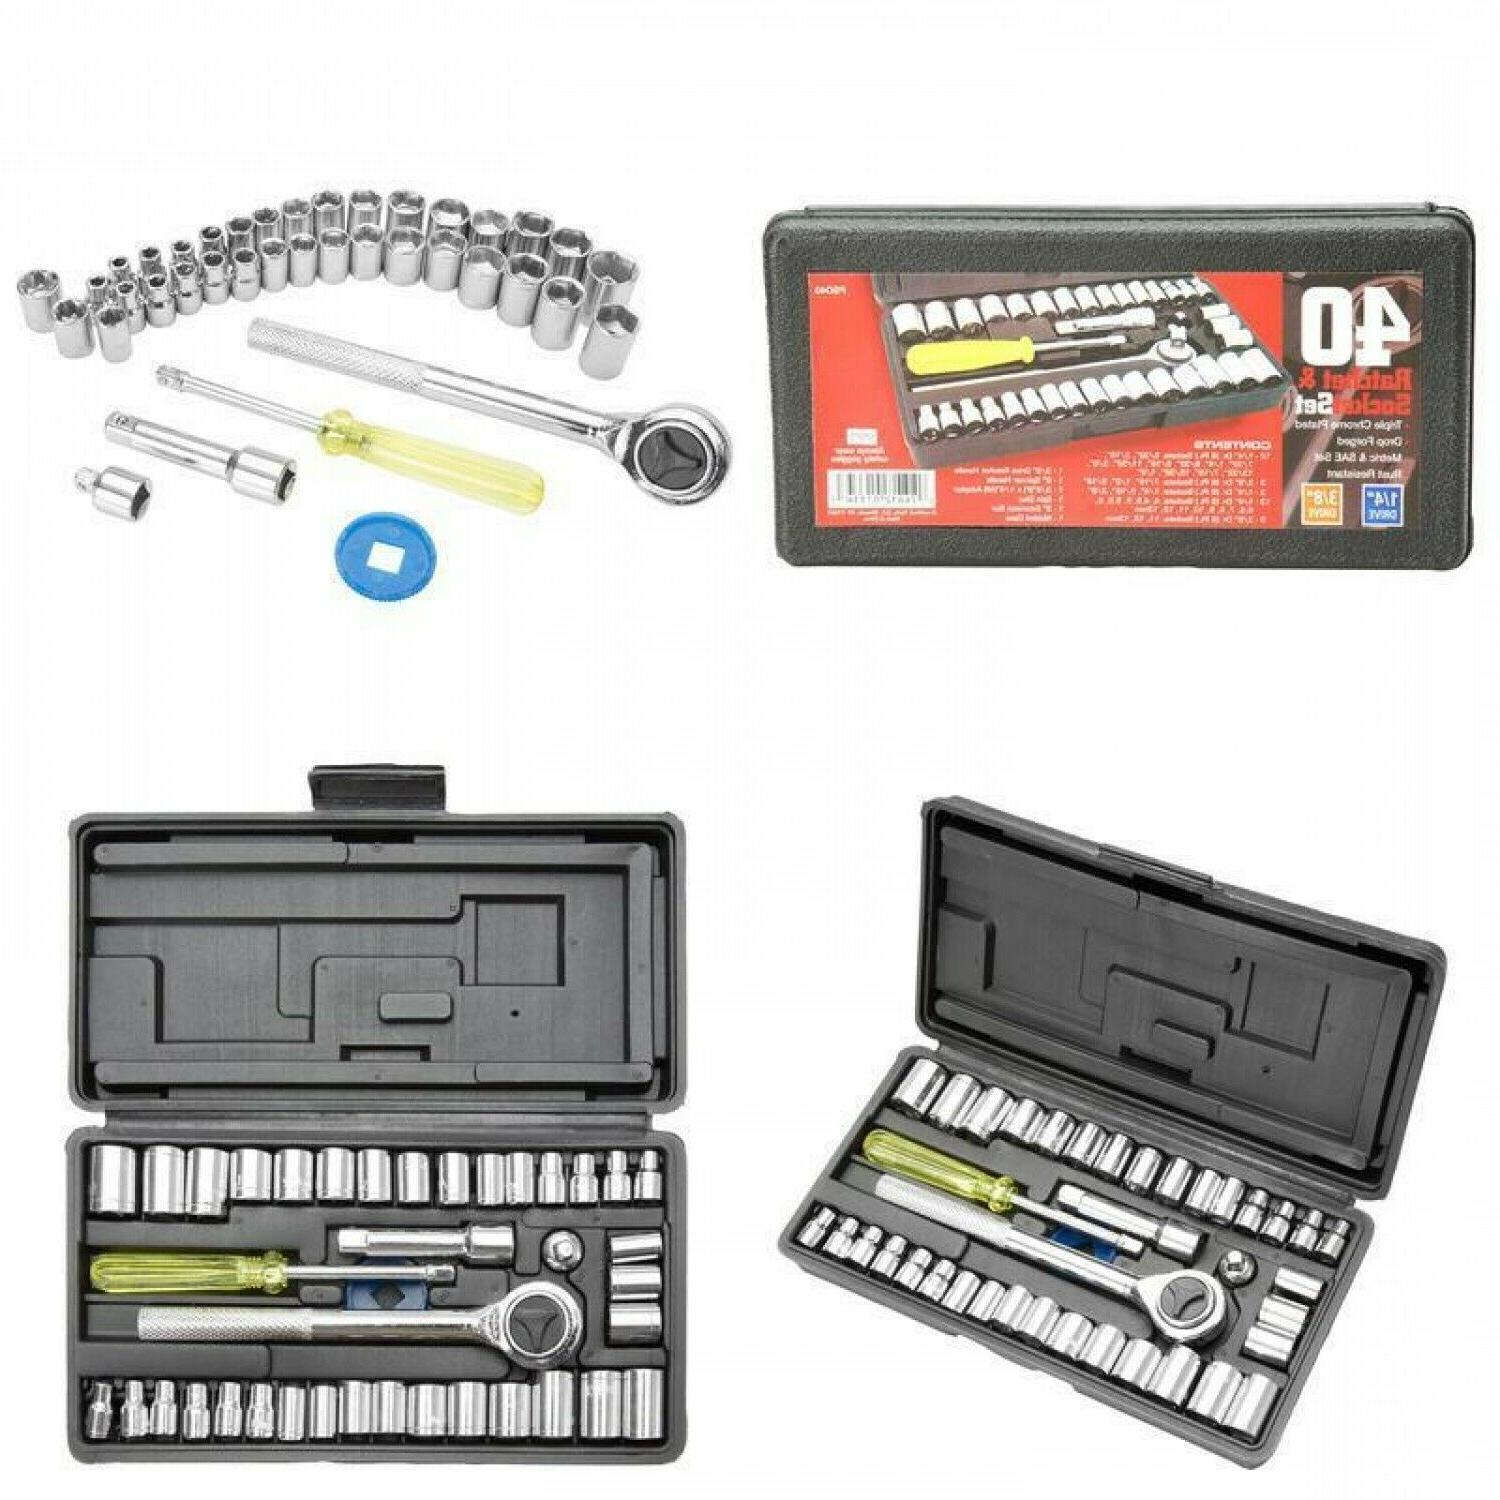 Ratchet Socket Craftsman Tool Set 40 Pc 1/4 3/8-inch Drive S